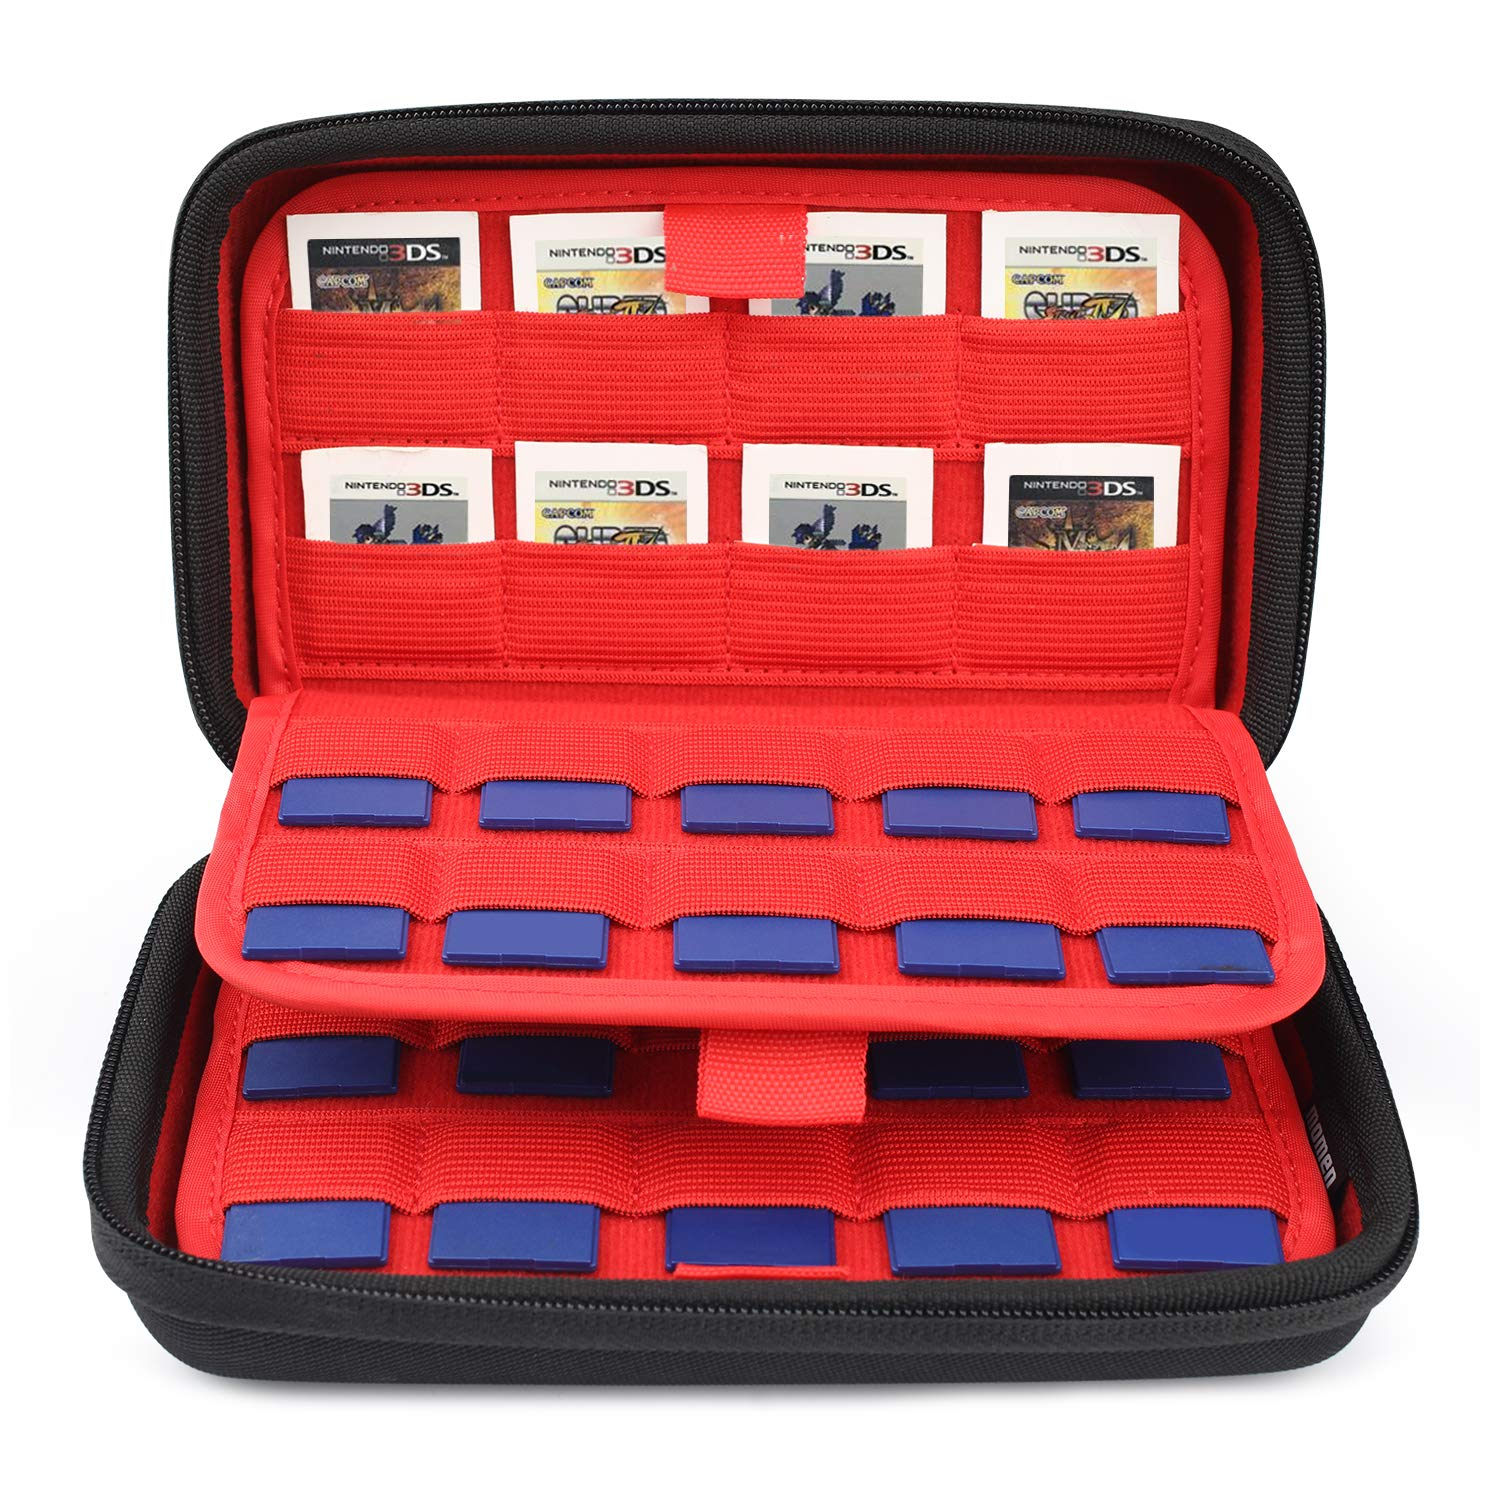 Nintendo Switch Game Card Case,Game Card Storage Box,SD Memory Cards with 72 Elastic Slots Card Holders for Nintendo Switch 3DS/2DS, Ps Vita Games - Amazon Vine